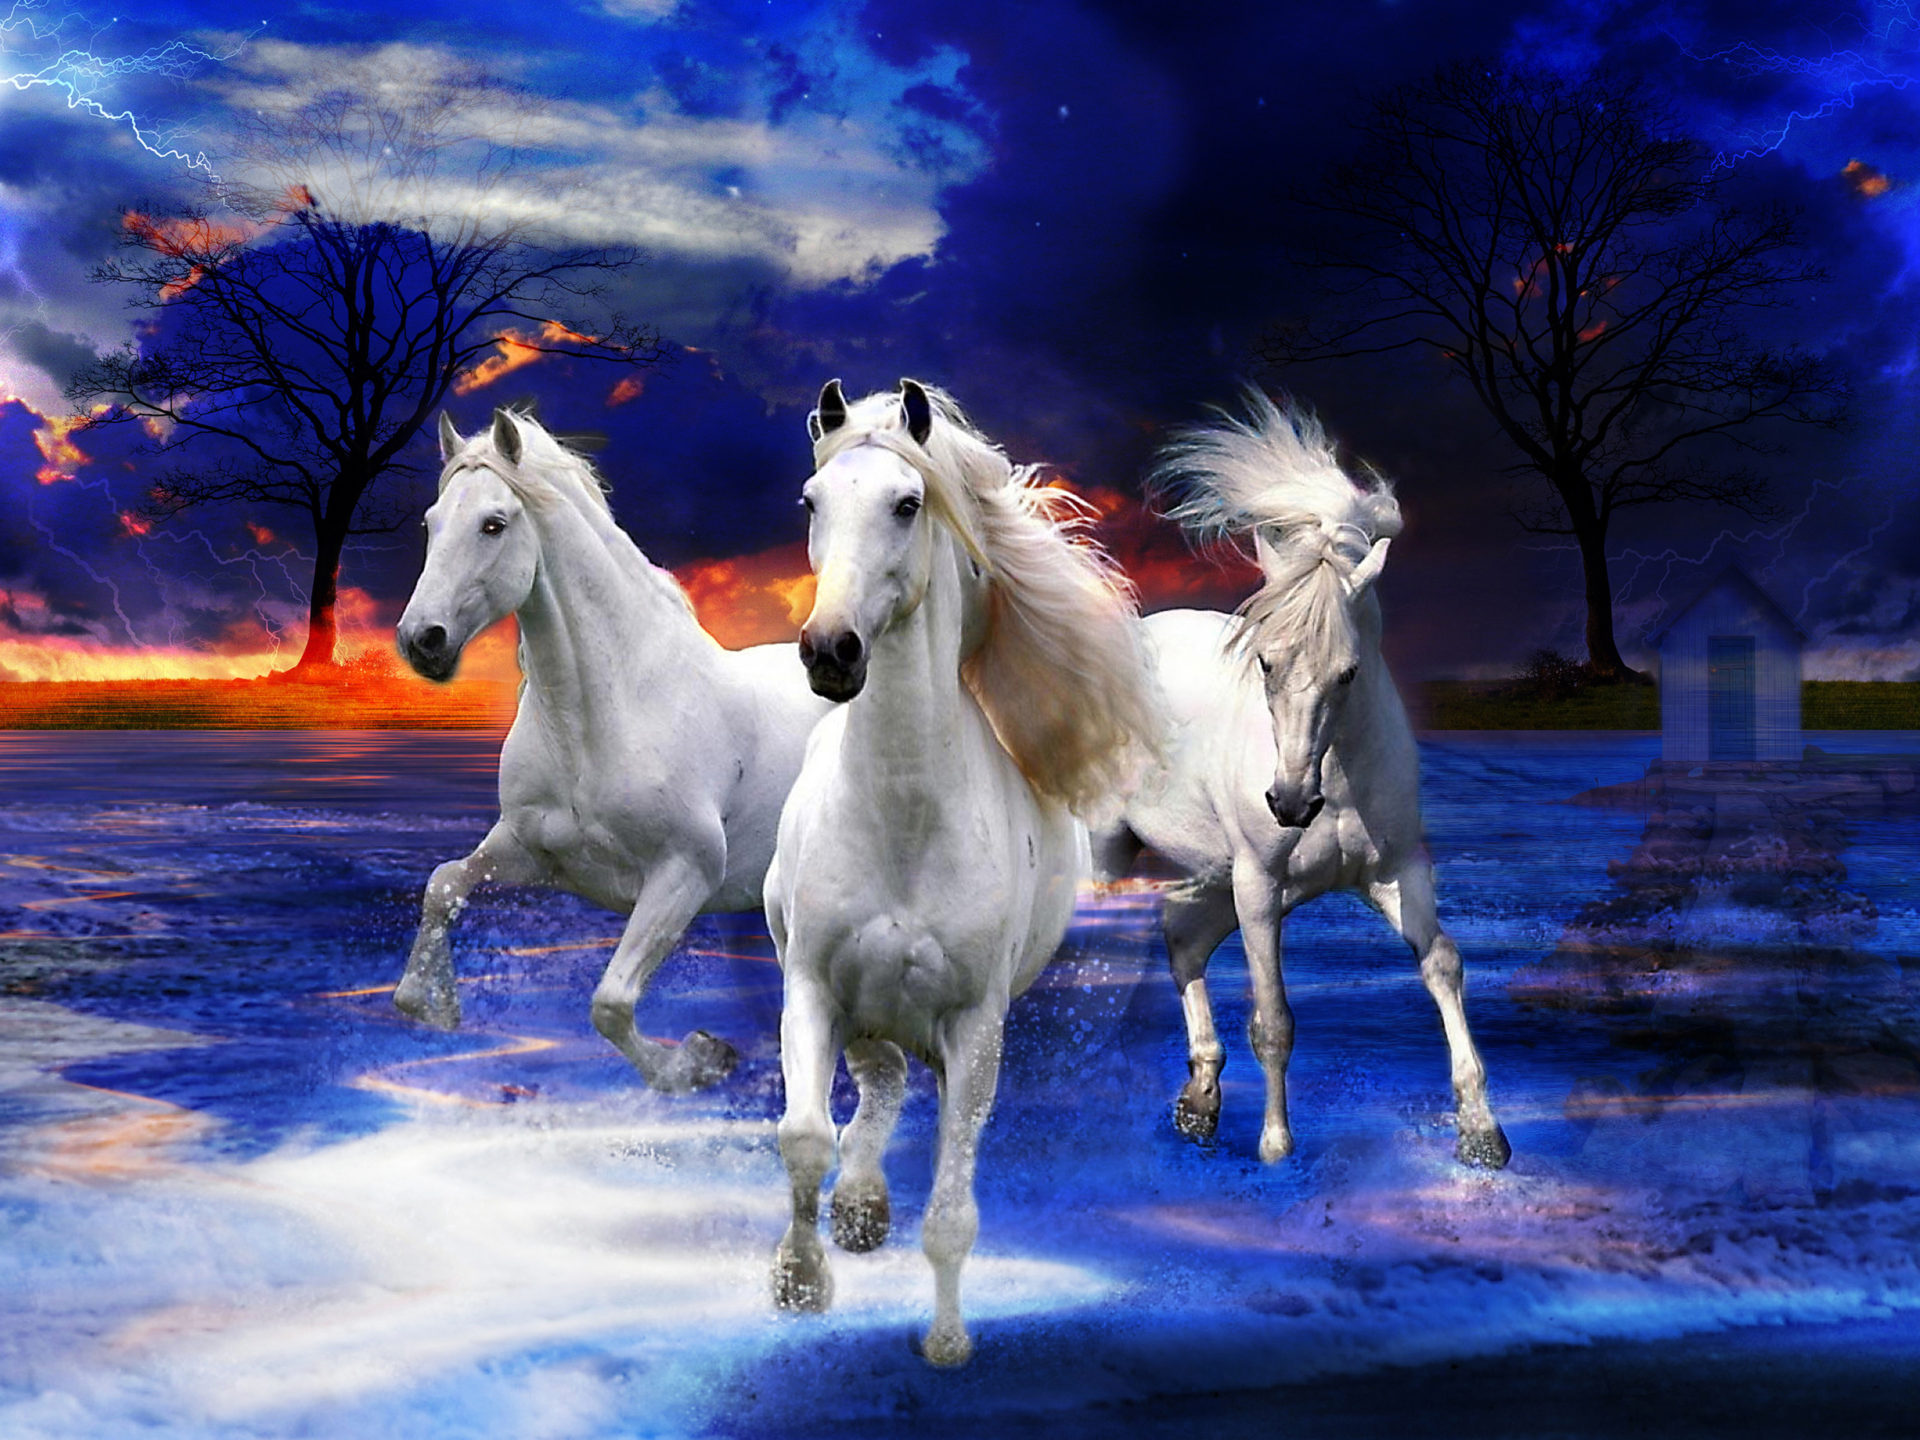 Cute Animals Hd Wallpapers Free Download Three White Wild Horses Photo Fantasy Art Wallpapers13 Com